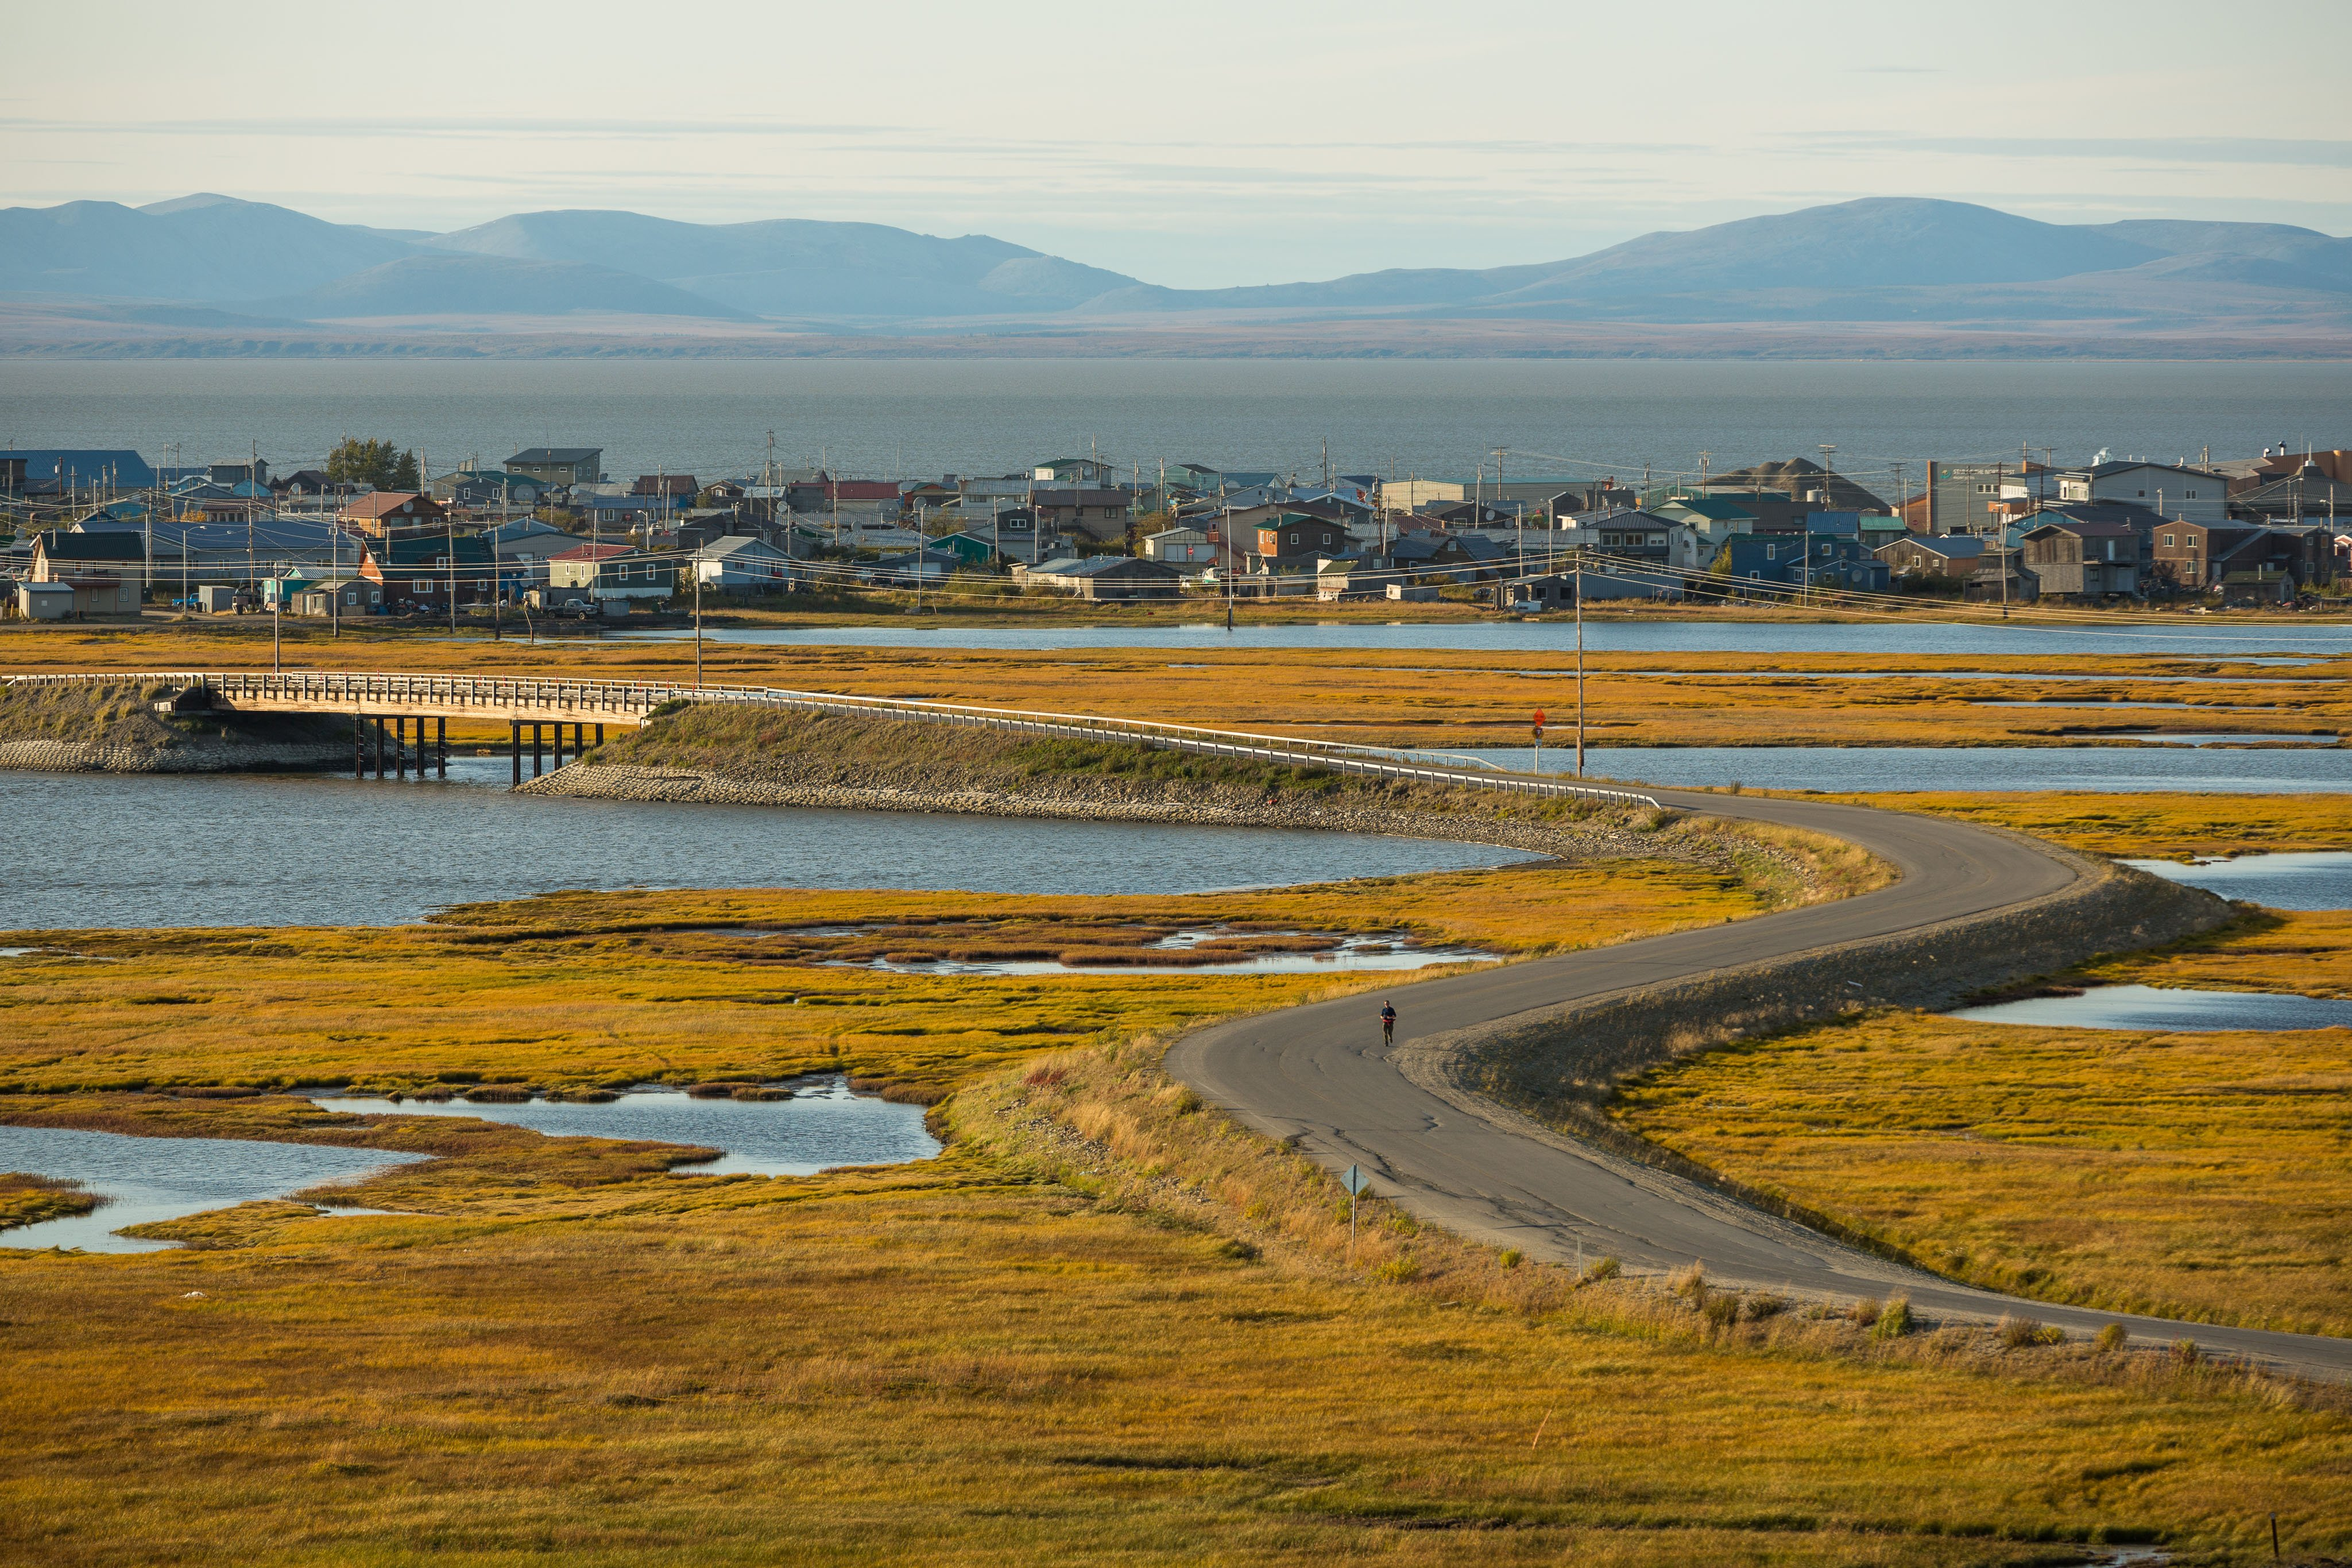 The town of Kotzebue, Alaska, on Monday, August 31, 2015. President Obama will visit the Northwest Arctic community on Wednesday, the first time a president will set foot in the American Arctic. (Loren Holmes / Alaska Dispatch News)